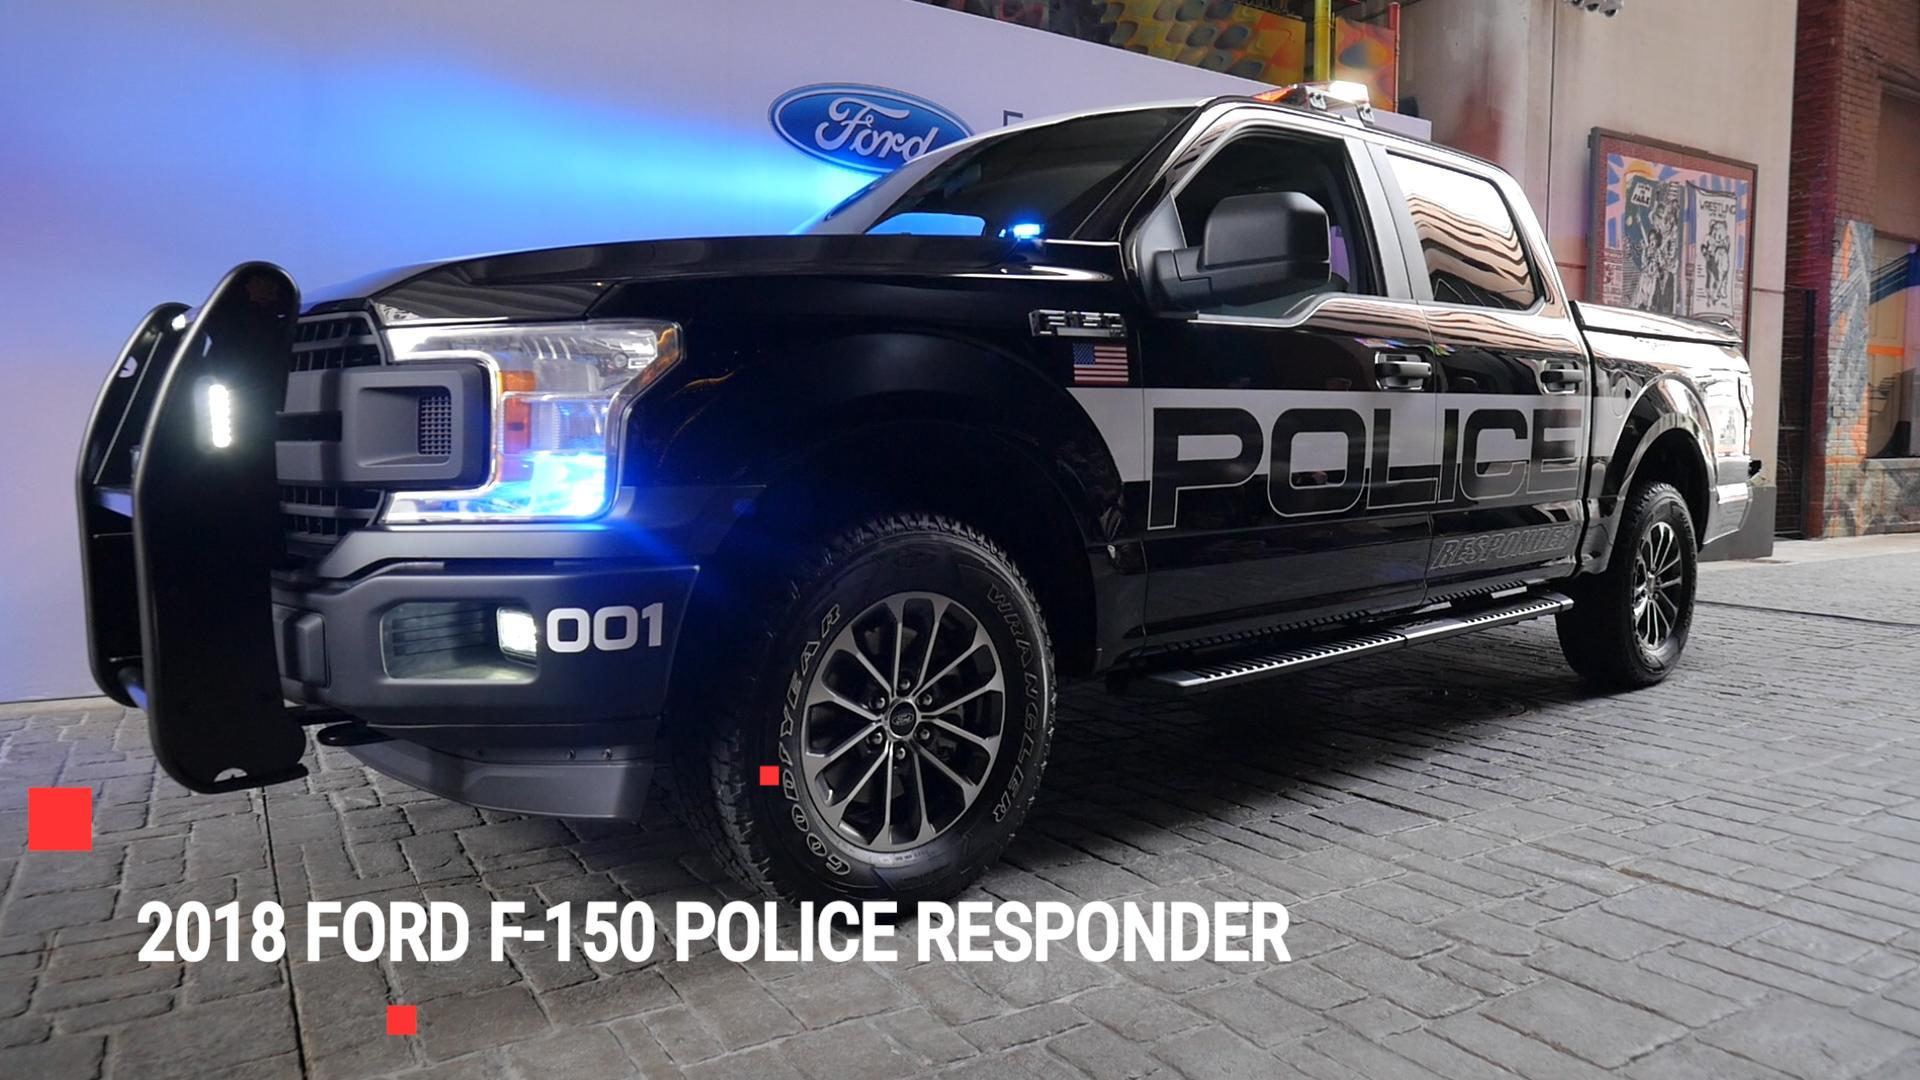 2018 Ford F150 Police Responder is Fords first pursuitrated